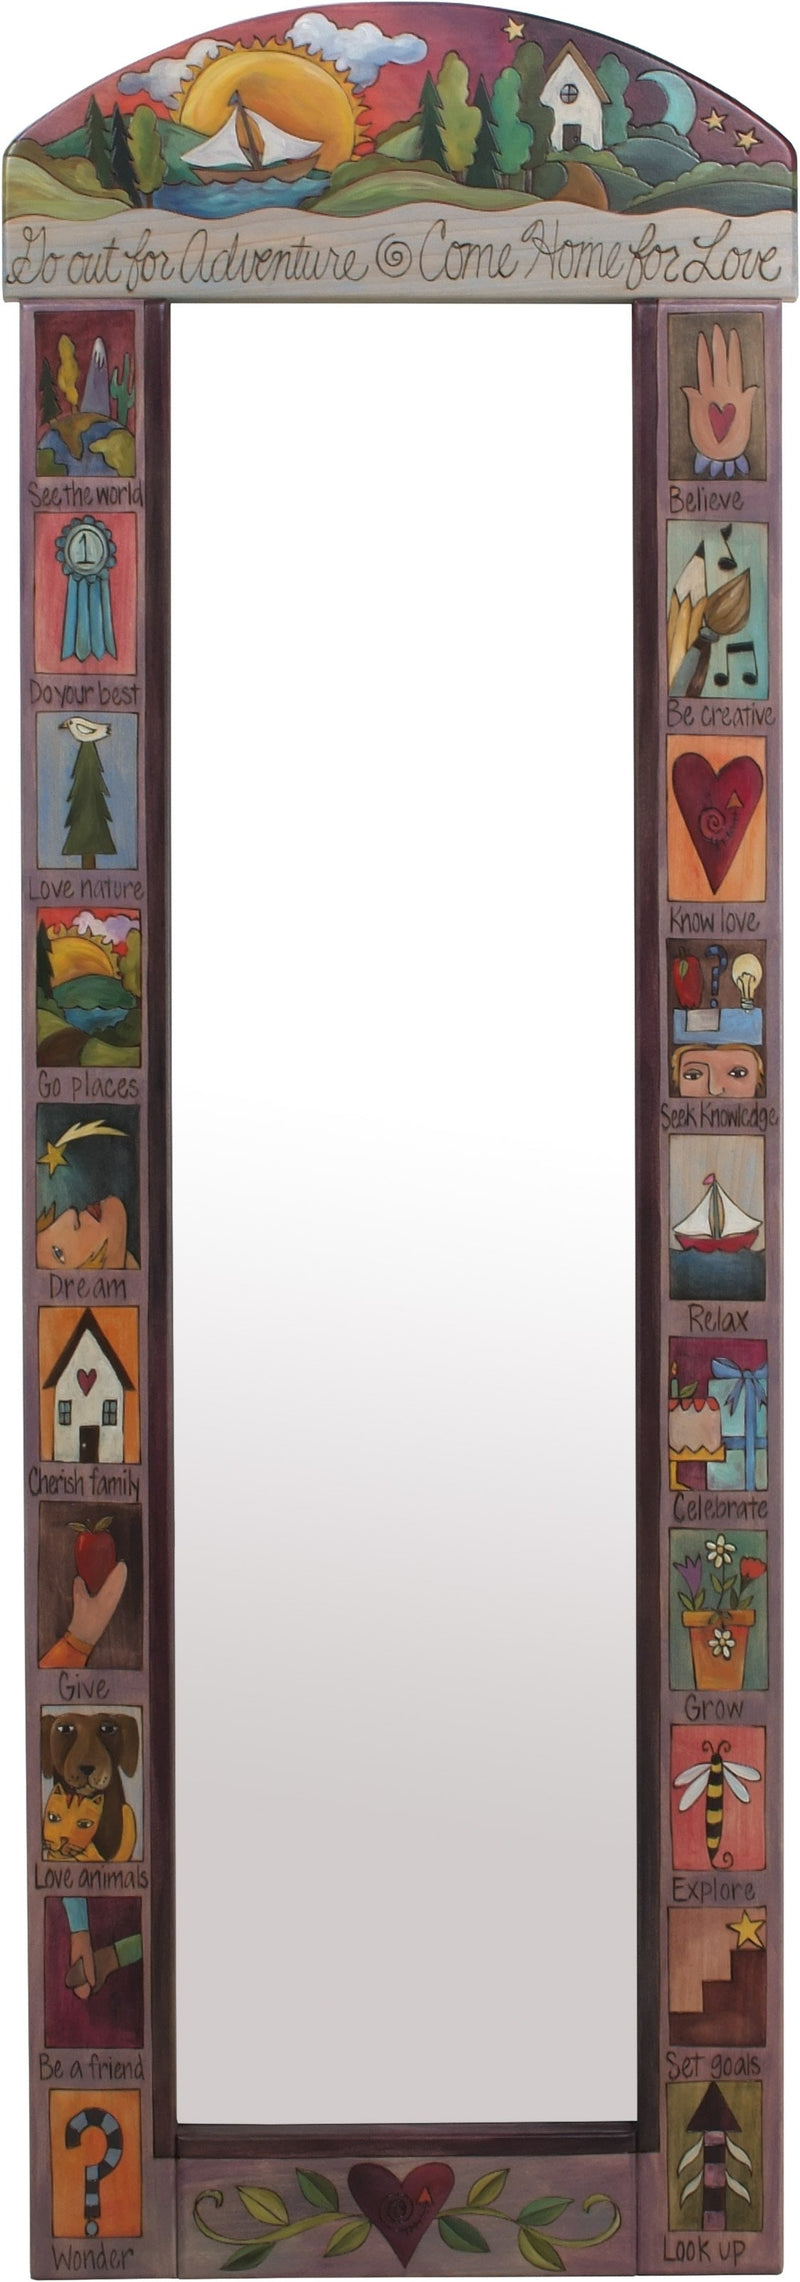 "Wardrobe Mirror –  ""Go Out for Adventure/Come Home for Love"" mirror with sun and moon over a cozy cottage in the hills motif"